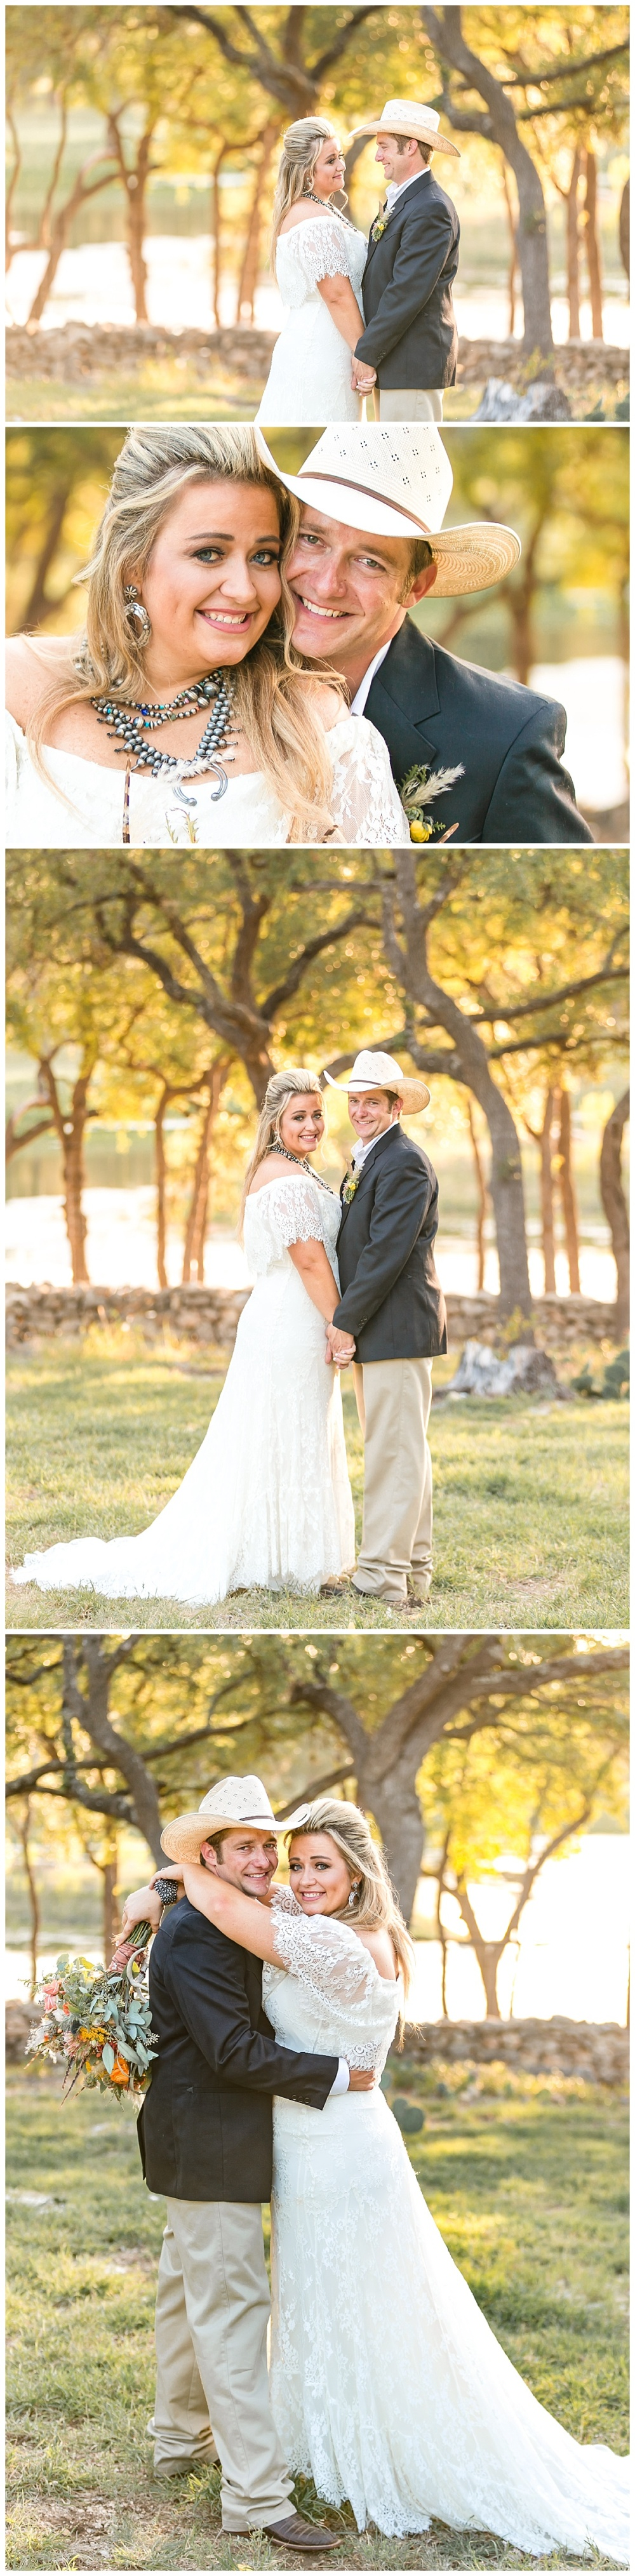 Texas-Wedding-Photographer-Braded-T-Ranch-Kendalia-Bride-Groom-Southwestern-Style-Carly-Barton-Photography-Vogt_0053.jpg